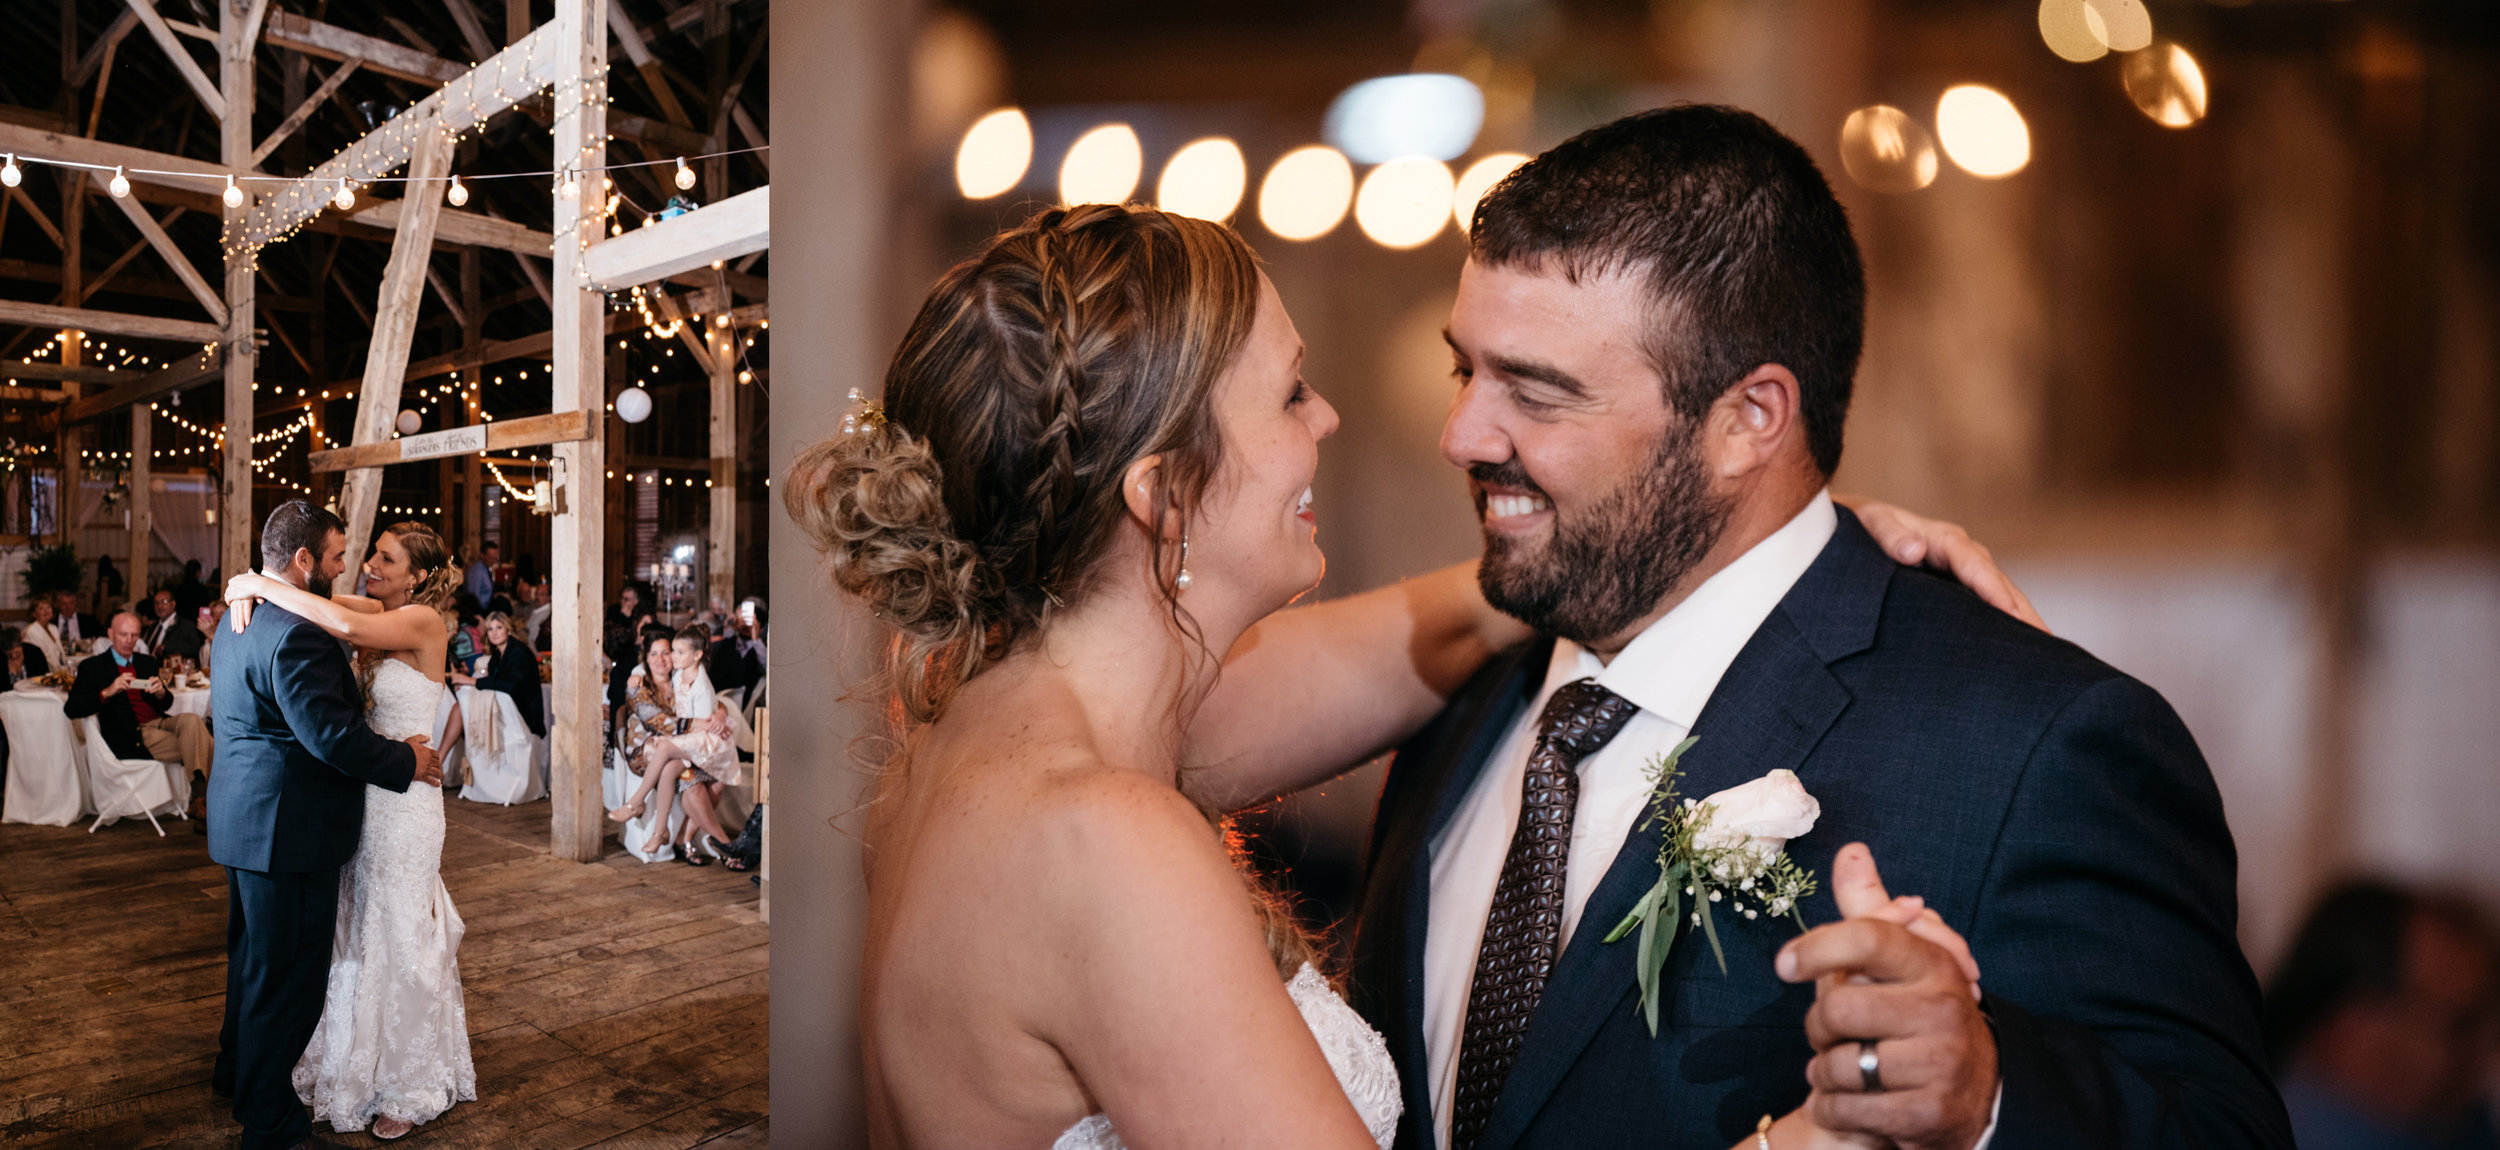 first-dance-the-event-barn-at-highland-farms.jpg